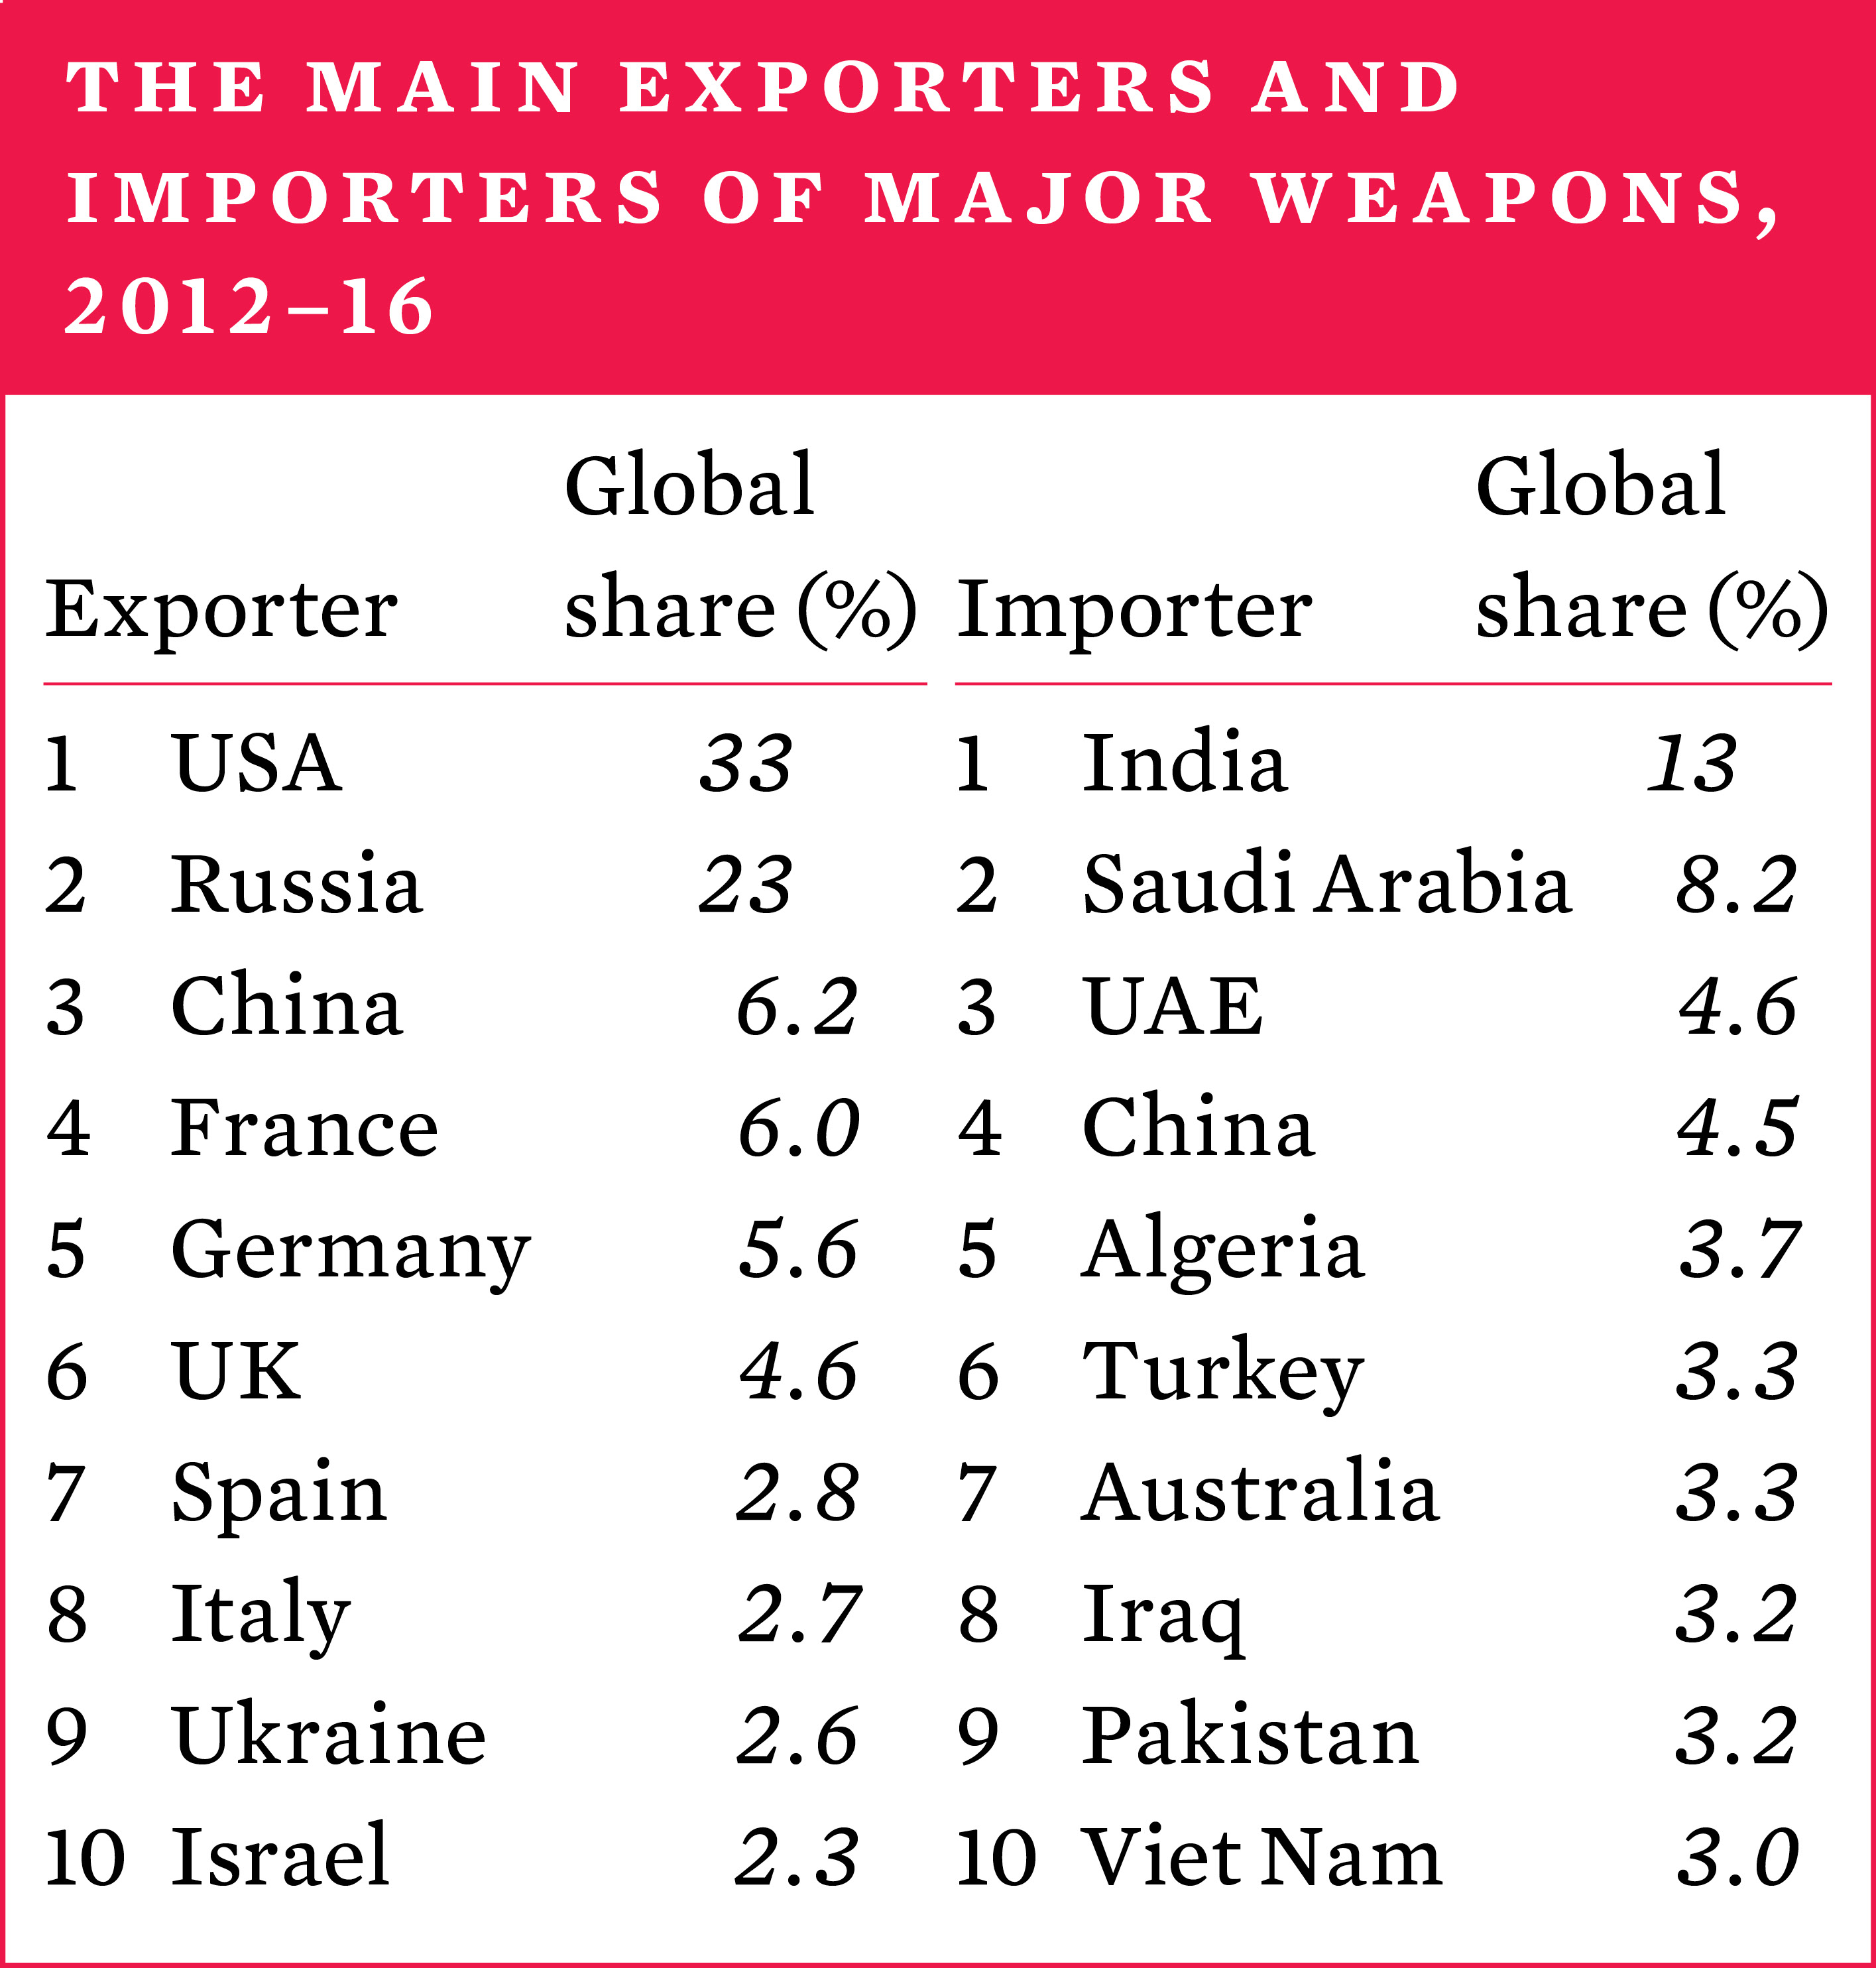 The main exporters and importers of major weapons, 2012-16